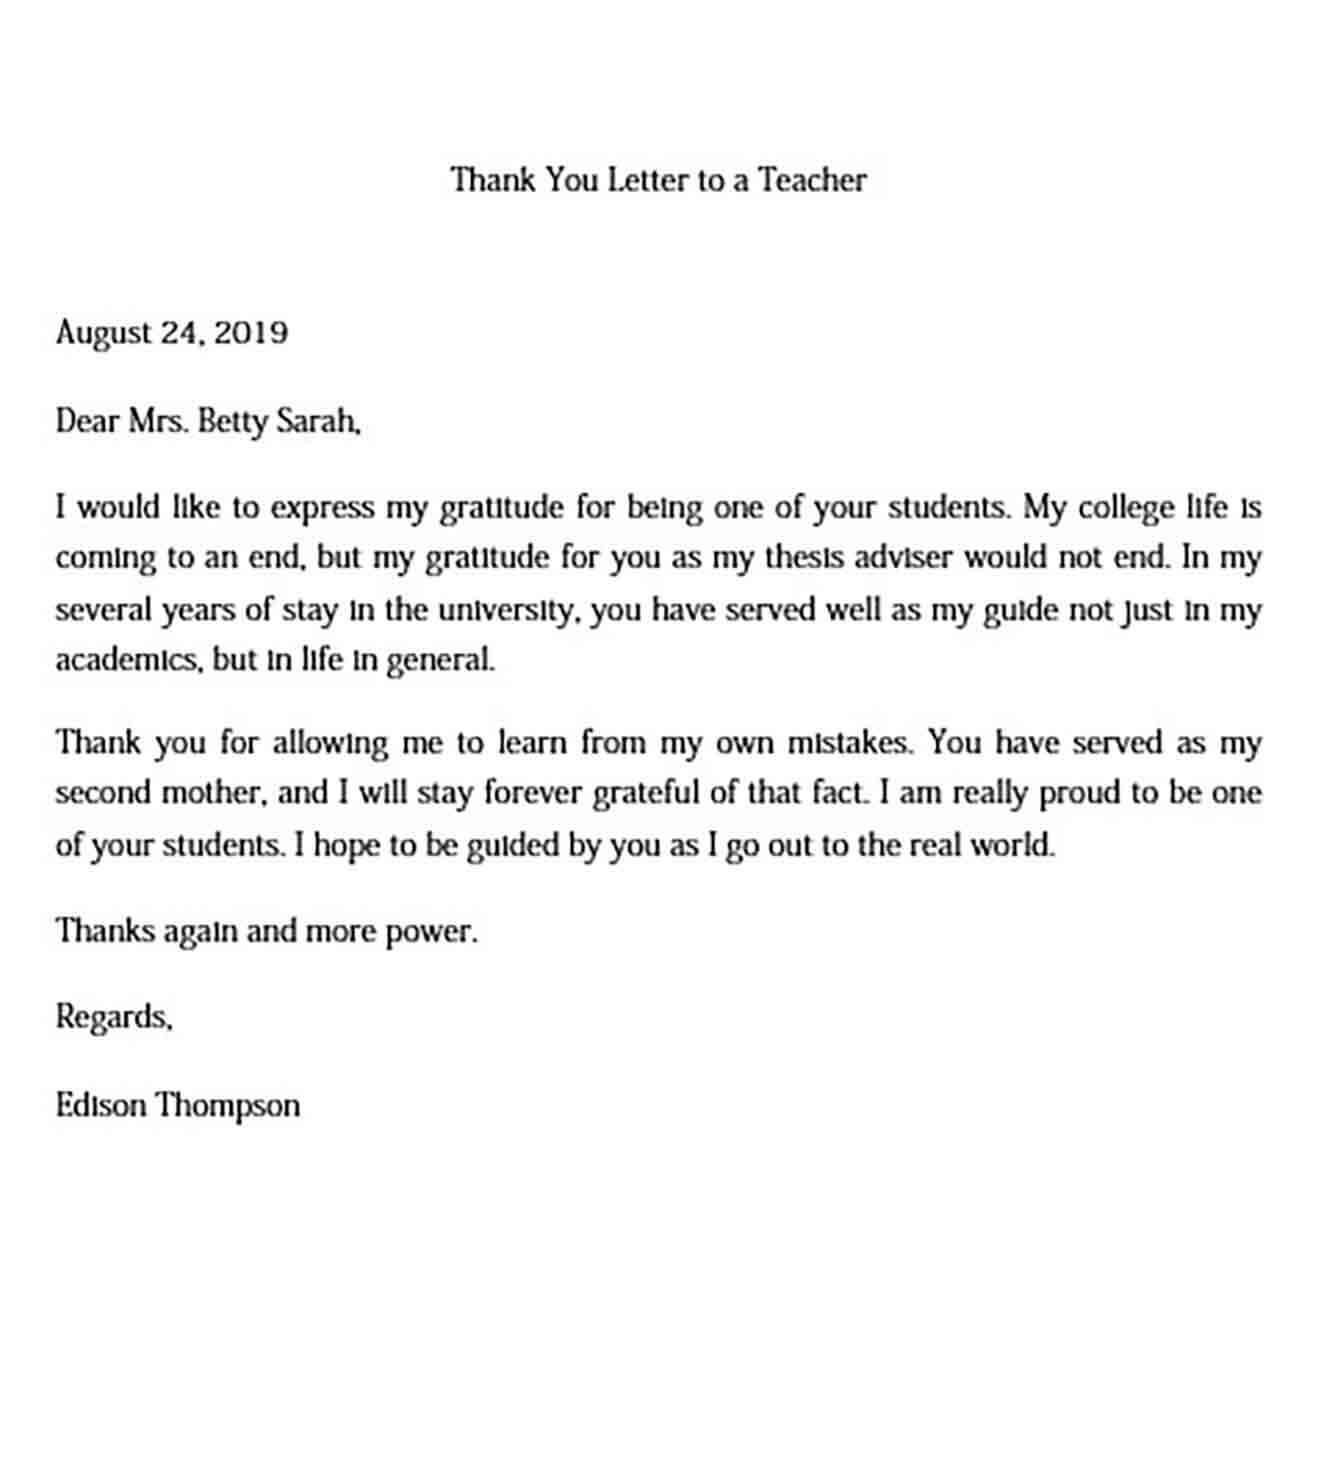 Sample Thank You Letter to a Teacher